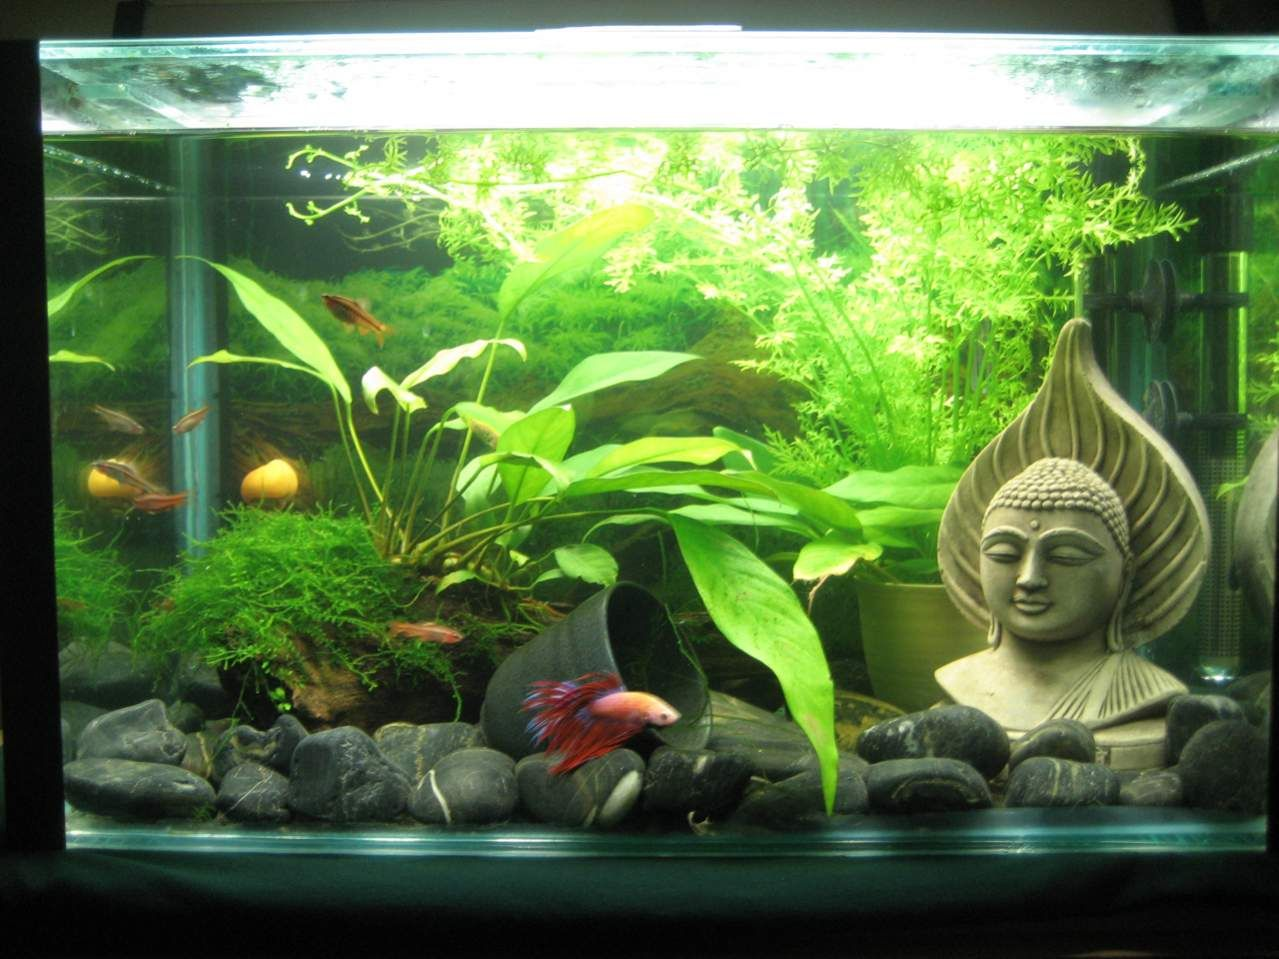 Fish for asian aquarium - So I Love The Whole Zen Look And I Have White Gravel And A Little Zen Hut In My Tank At The Moment I Have Just Started The Decorating Process And